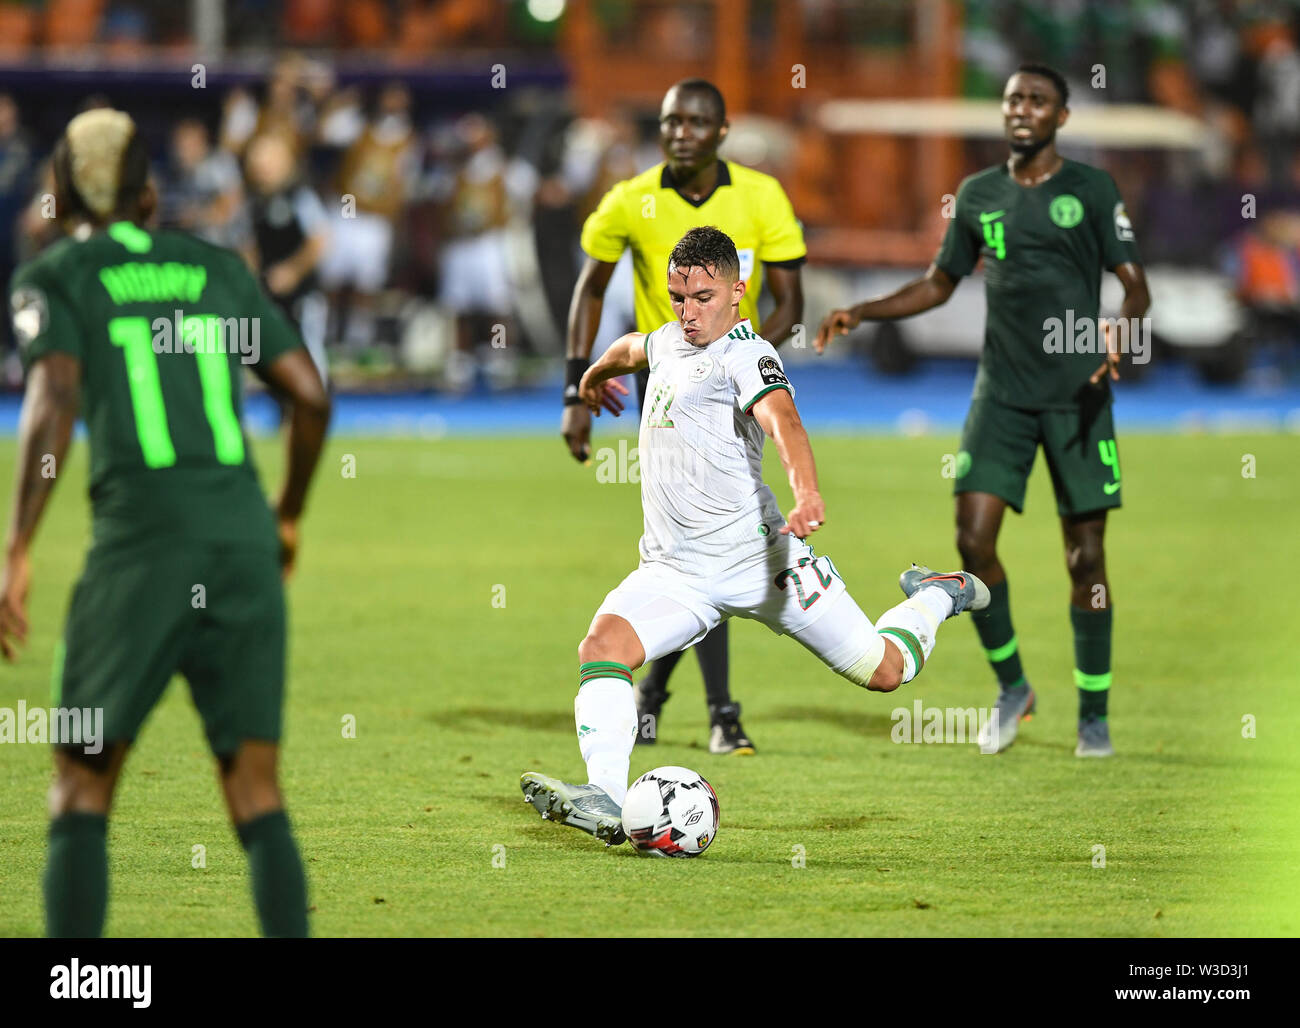 Cairo. 14th July, 2019. Ismael Bennacer of Algeria shoots during the semifinal match between Algeria and Nigeria at the 2019 Africa Cup of Nations in Cairo, Egypt on July 14, 2019. Credit: Li Yan/Xinhua/Alamy Live News - Stock Image